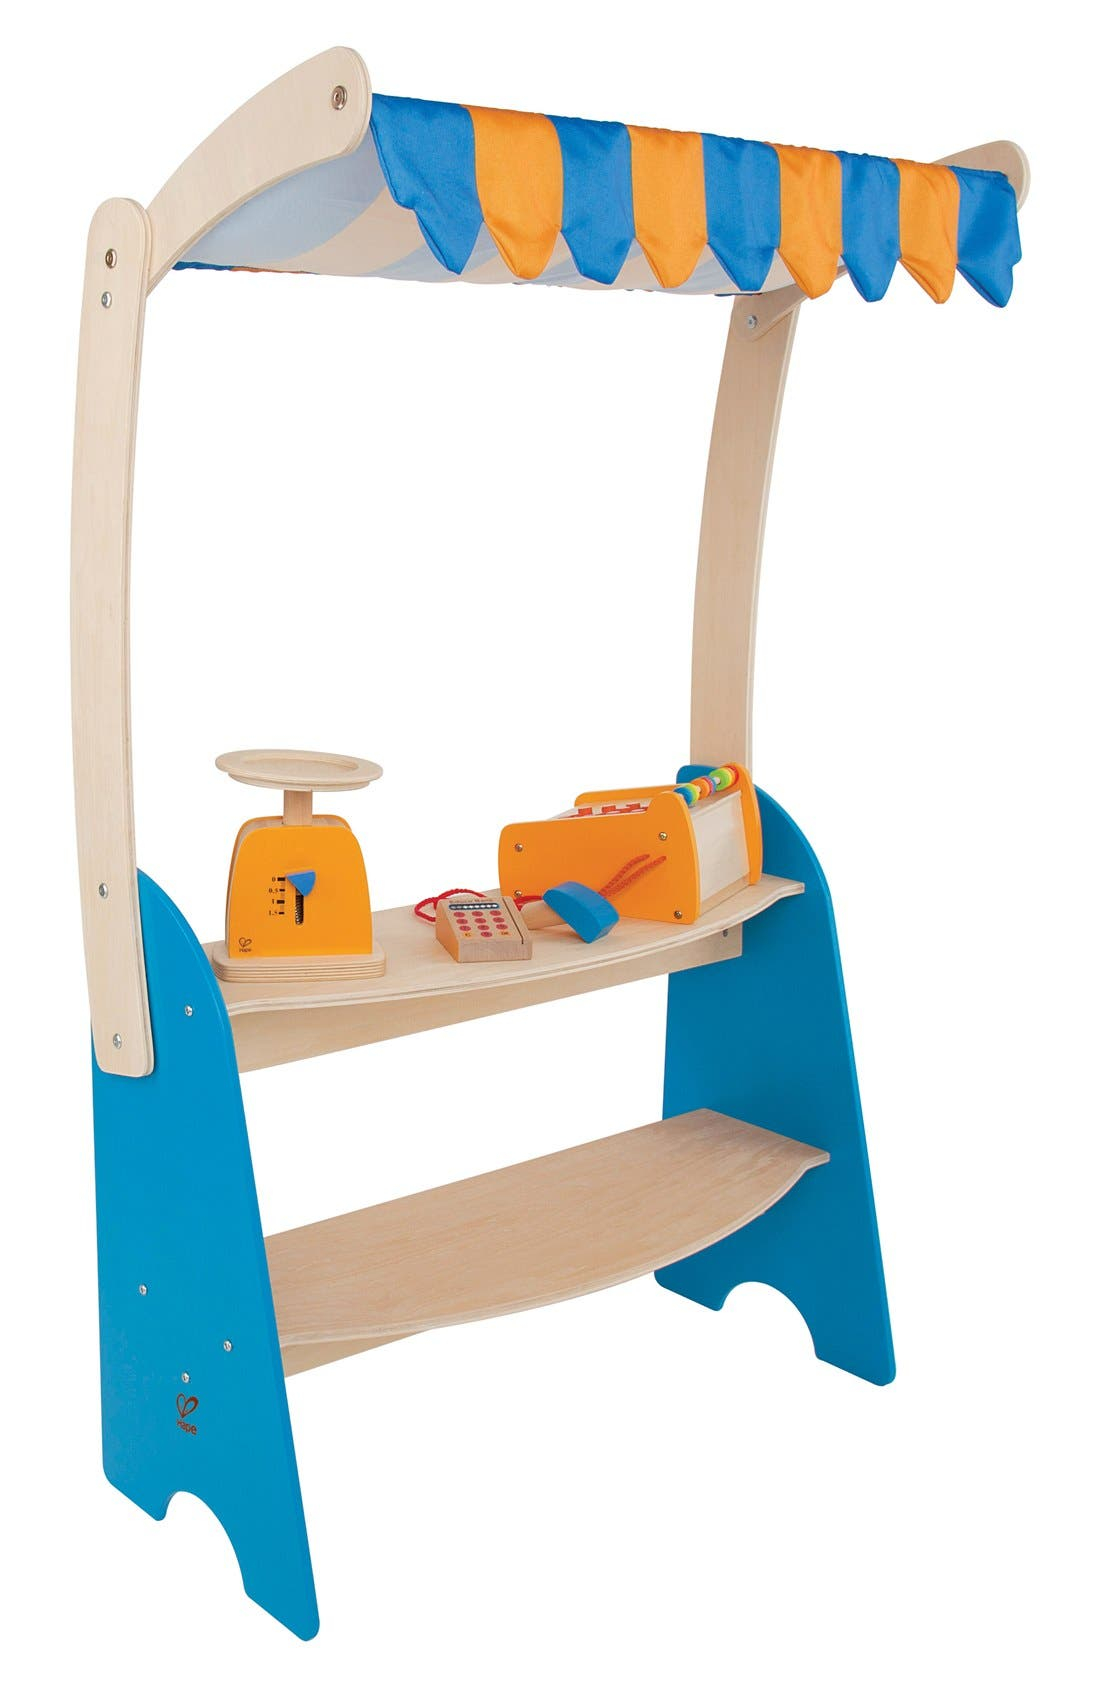 Alternate Image 1 Selected - Hape 'Market Checkout' Wooden Play Store